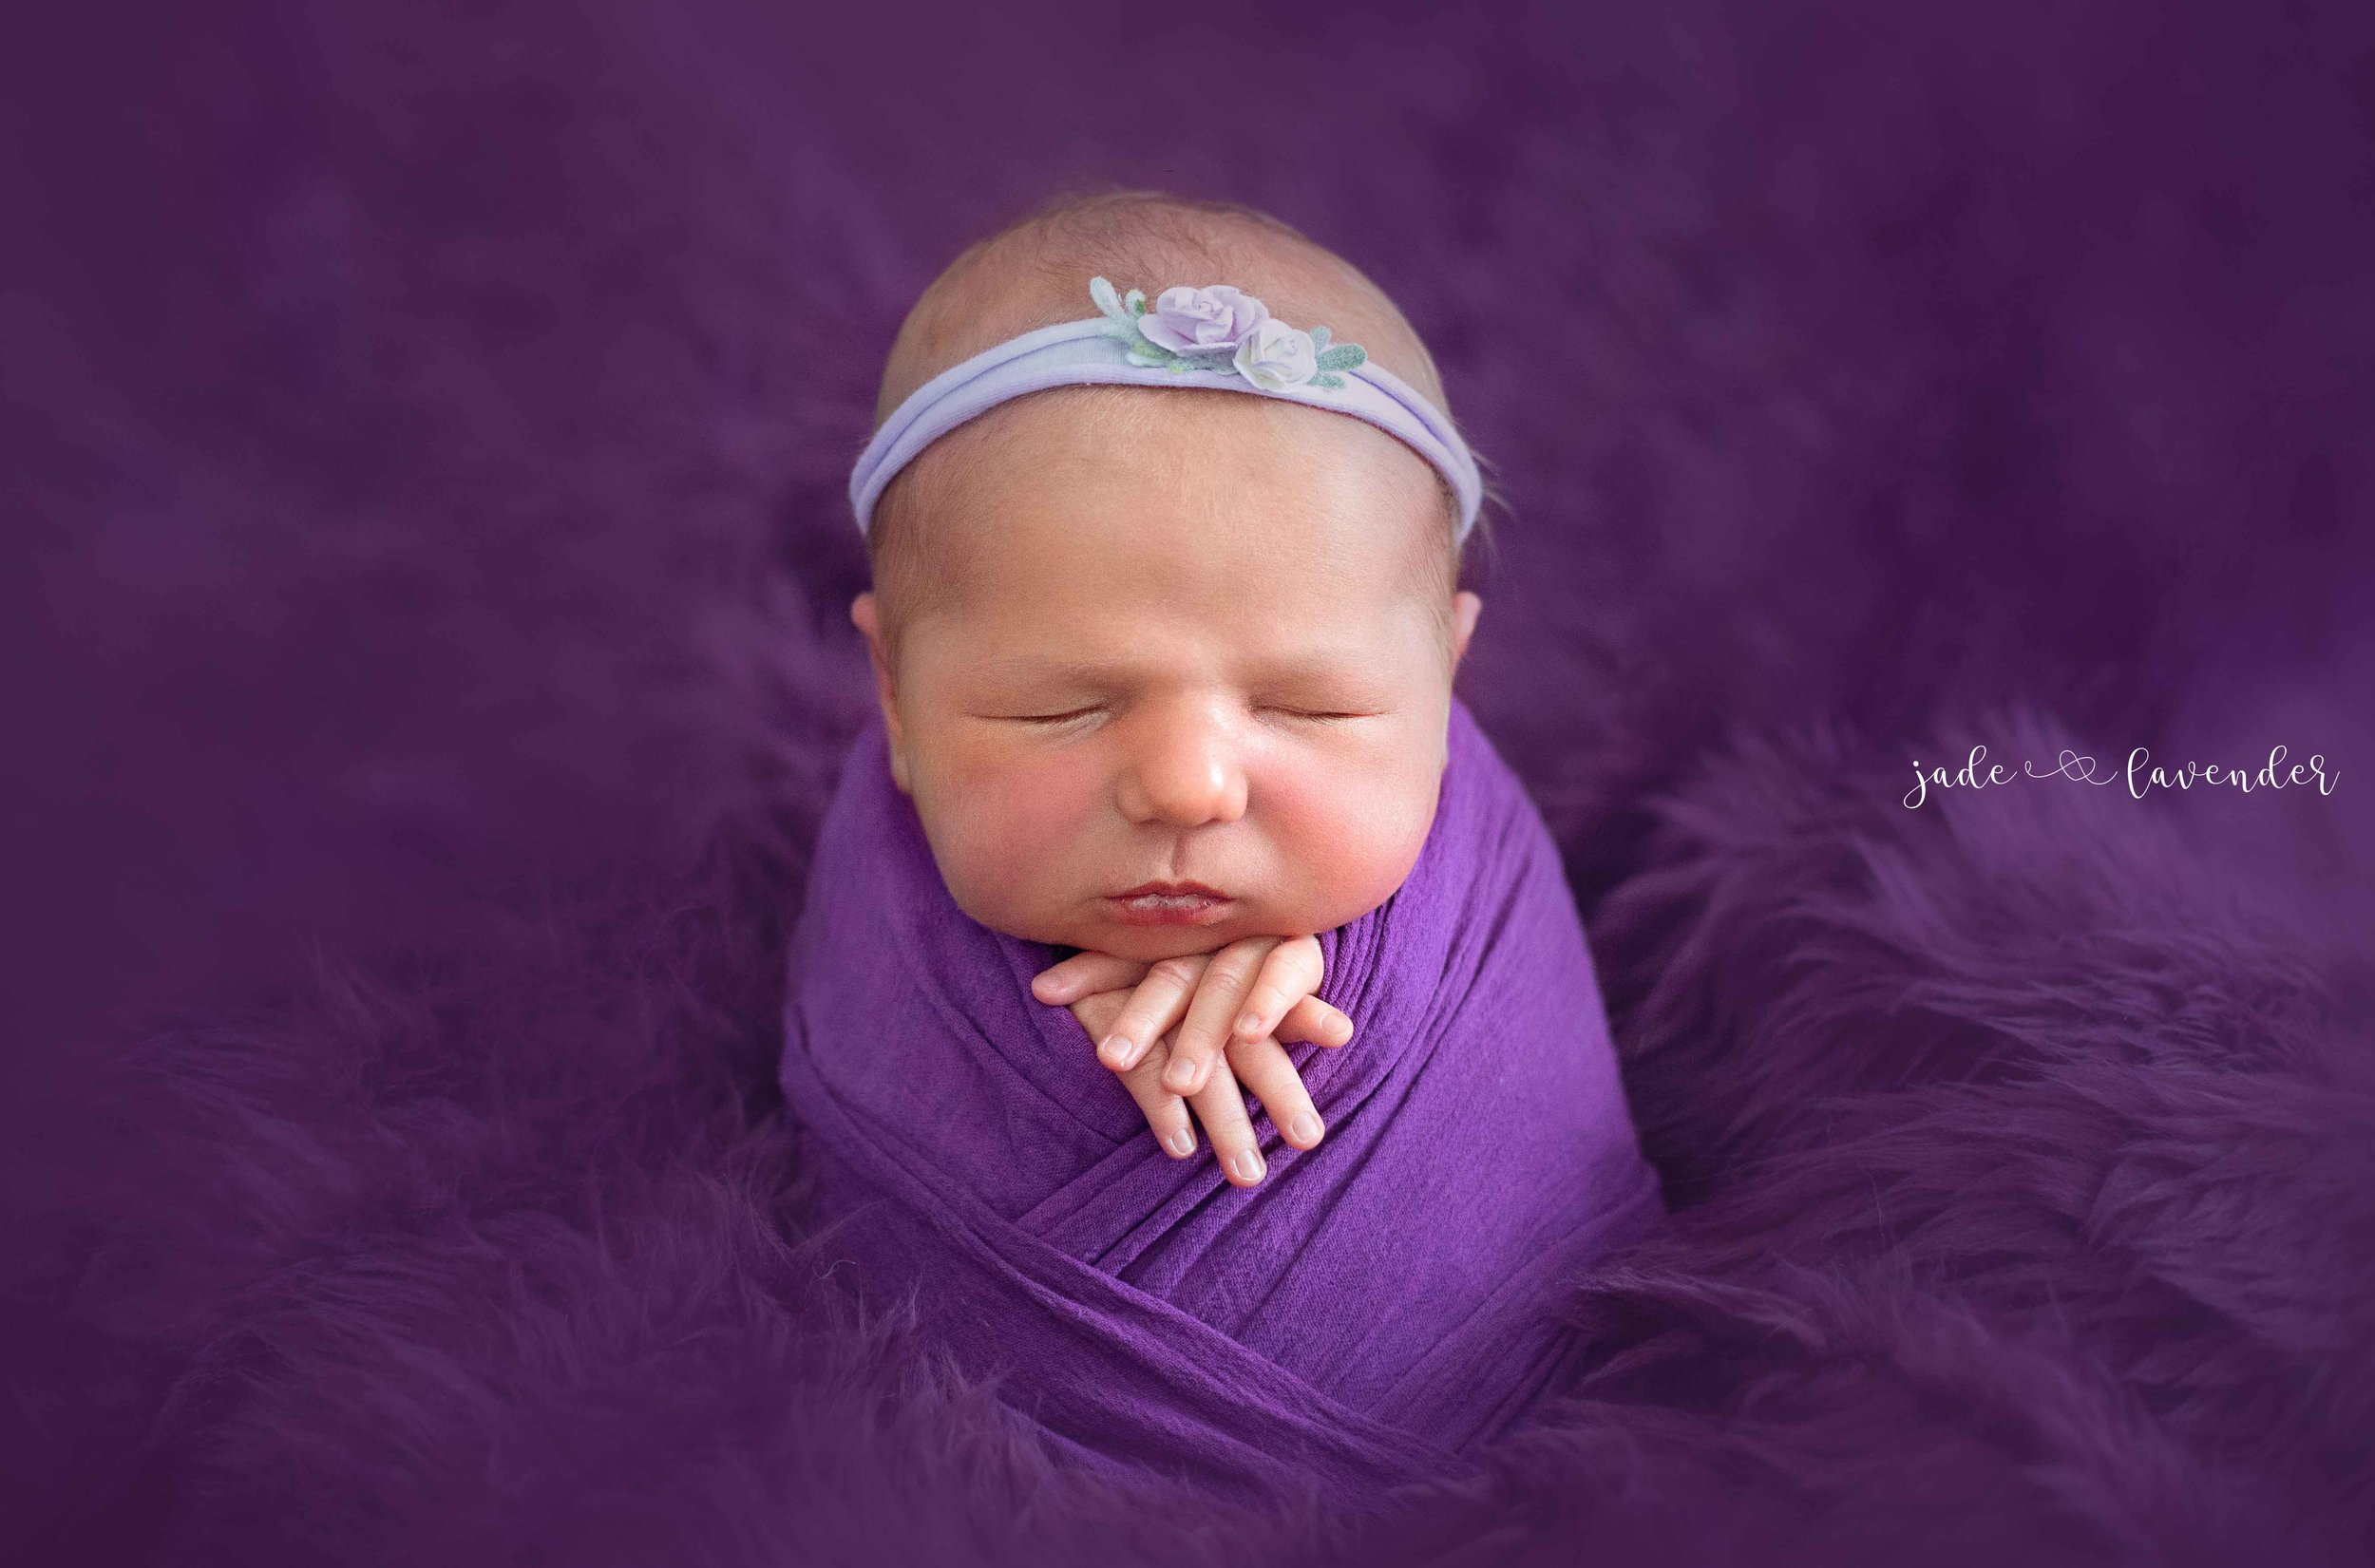 Newborn-photos-baby-photoshoot-spokane-washington-cute-potato-sack.jpg